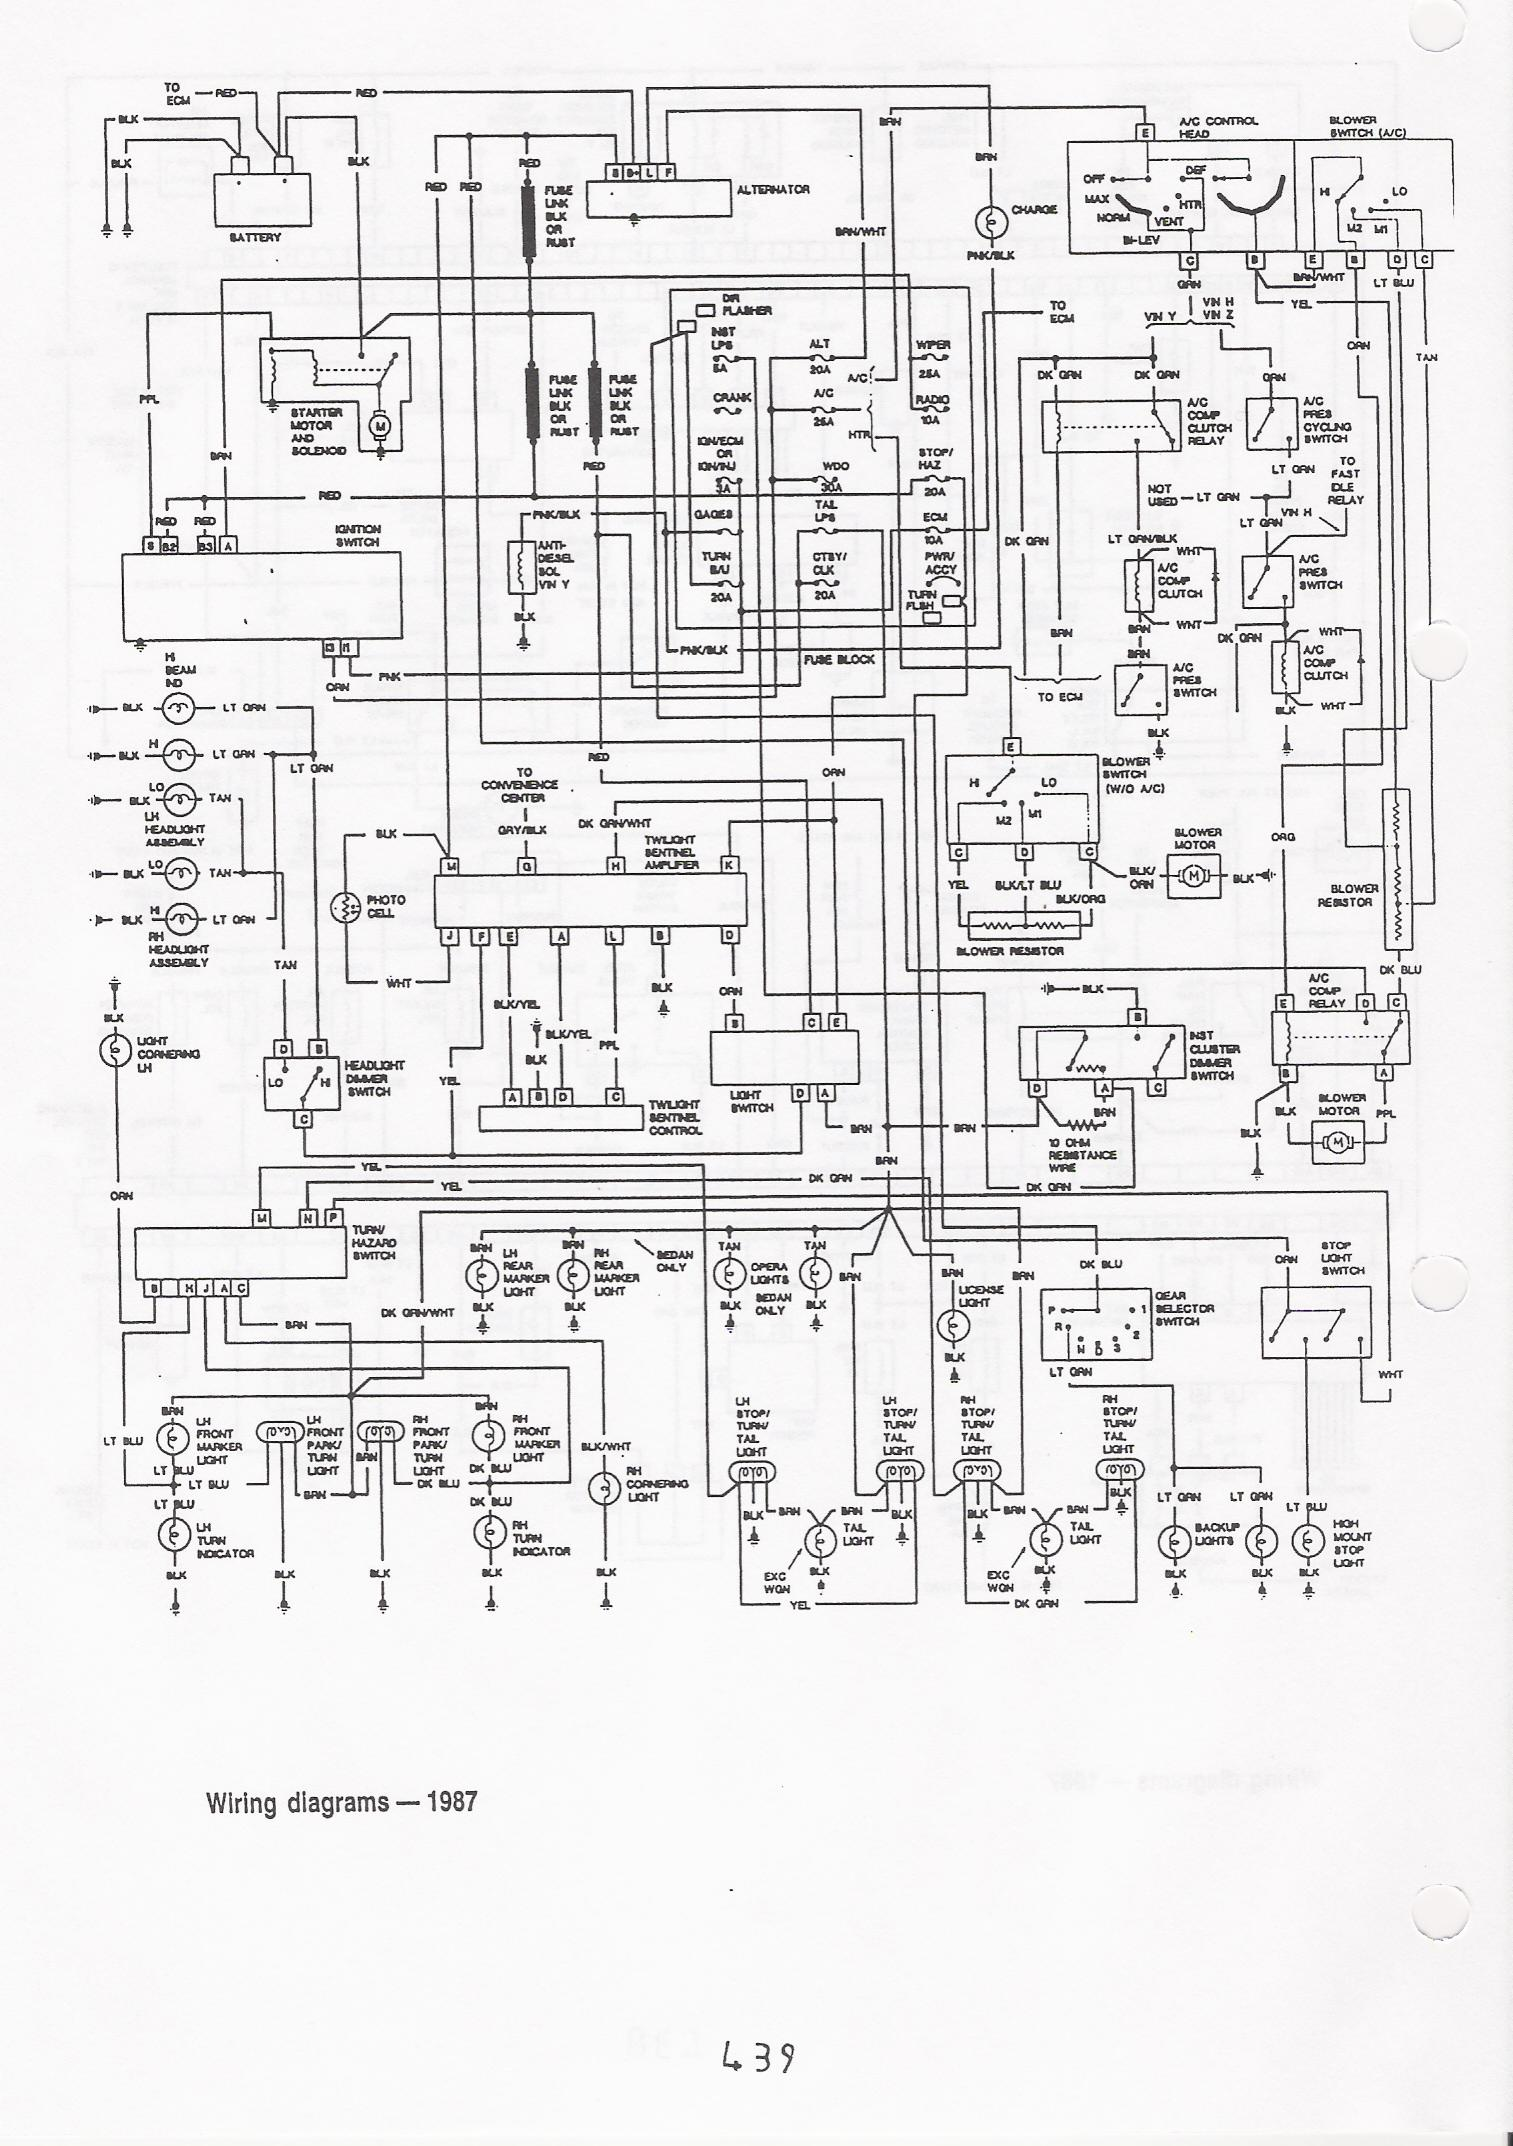 1981 chevy caprice wiring diagram